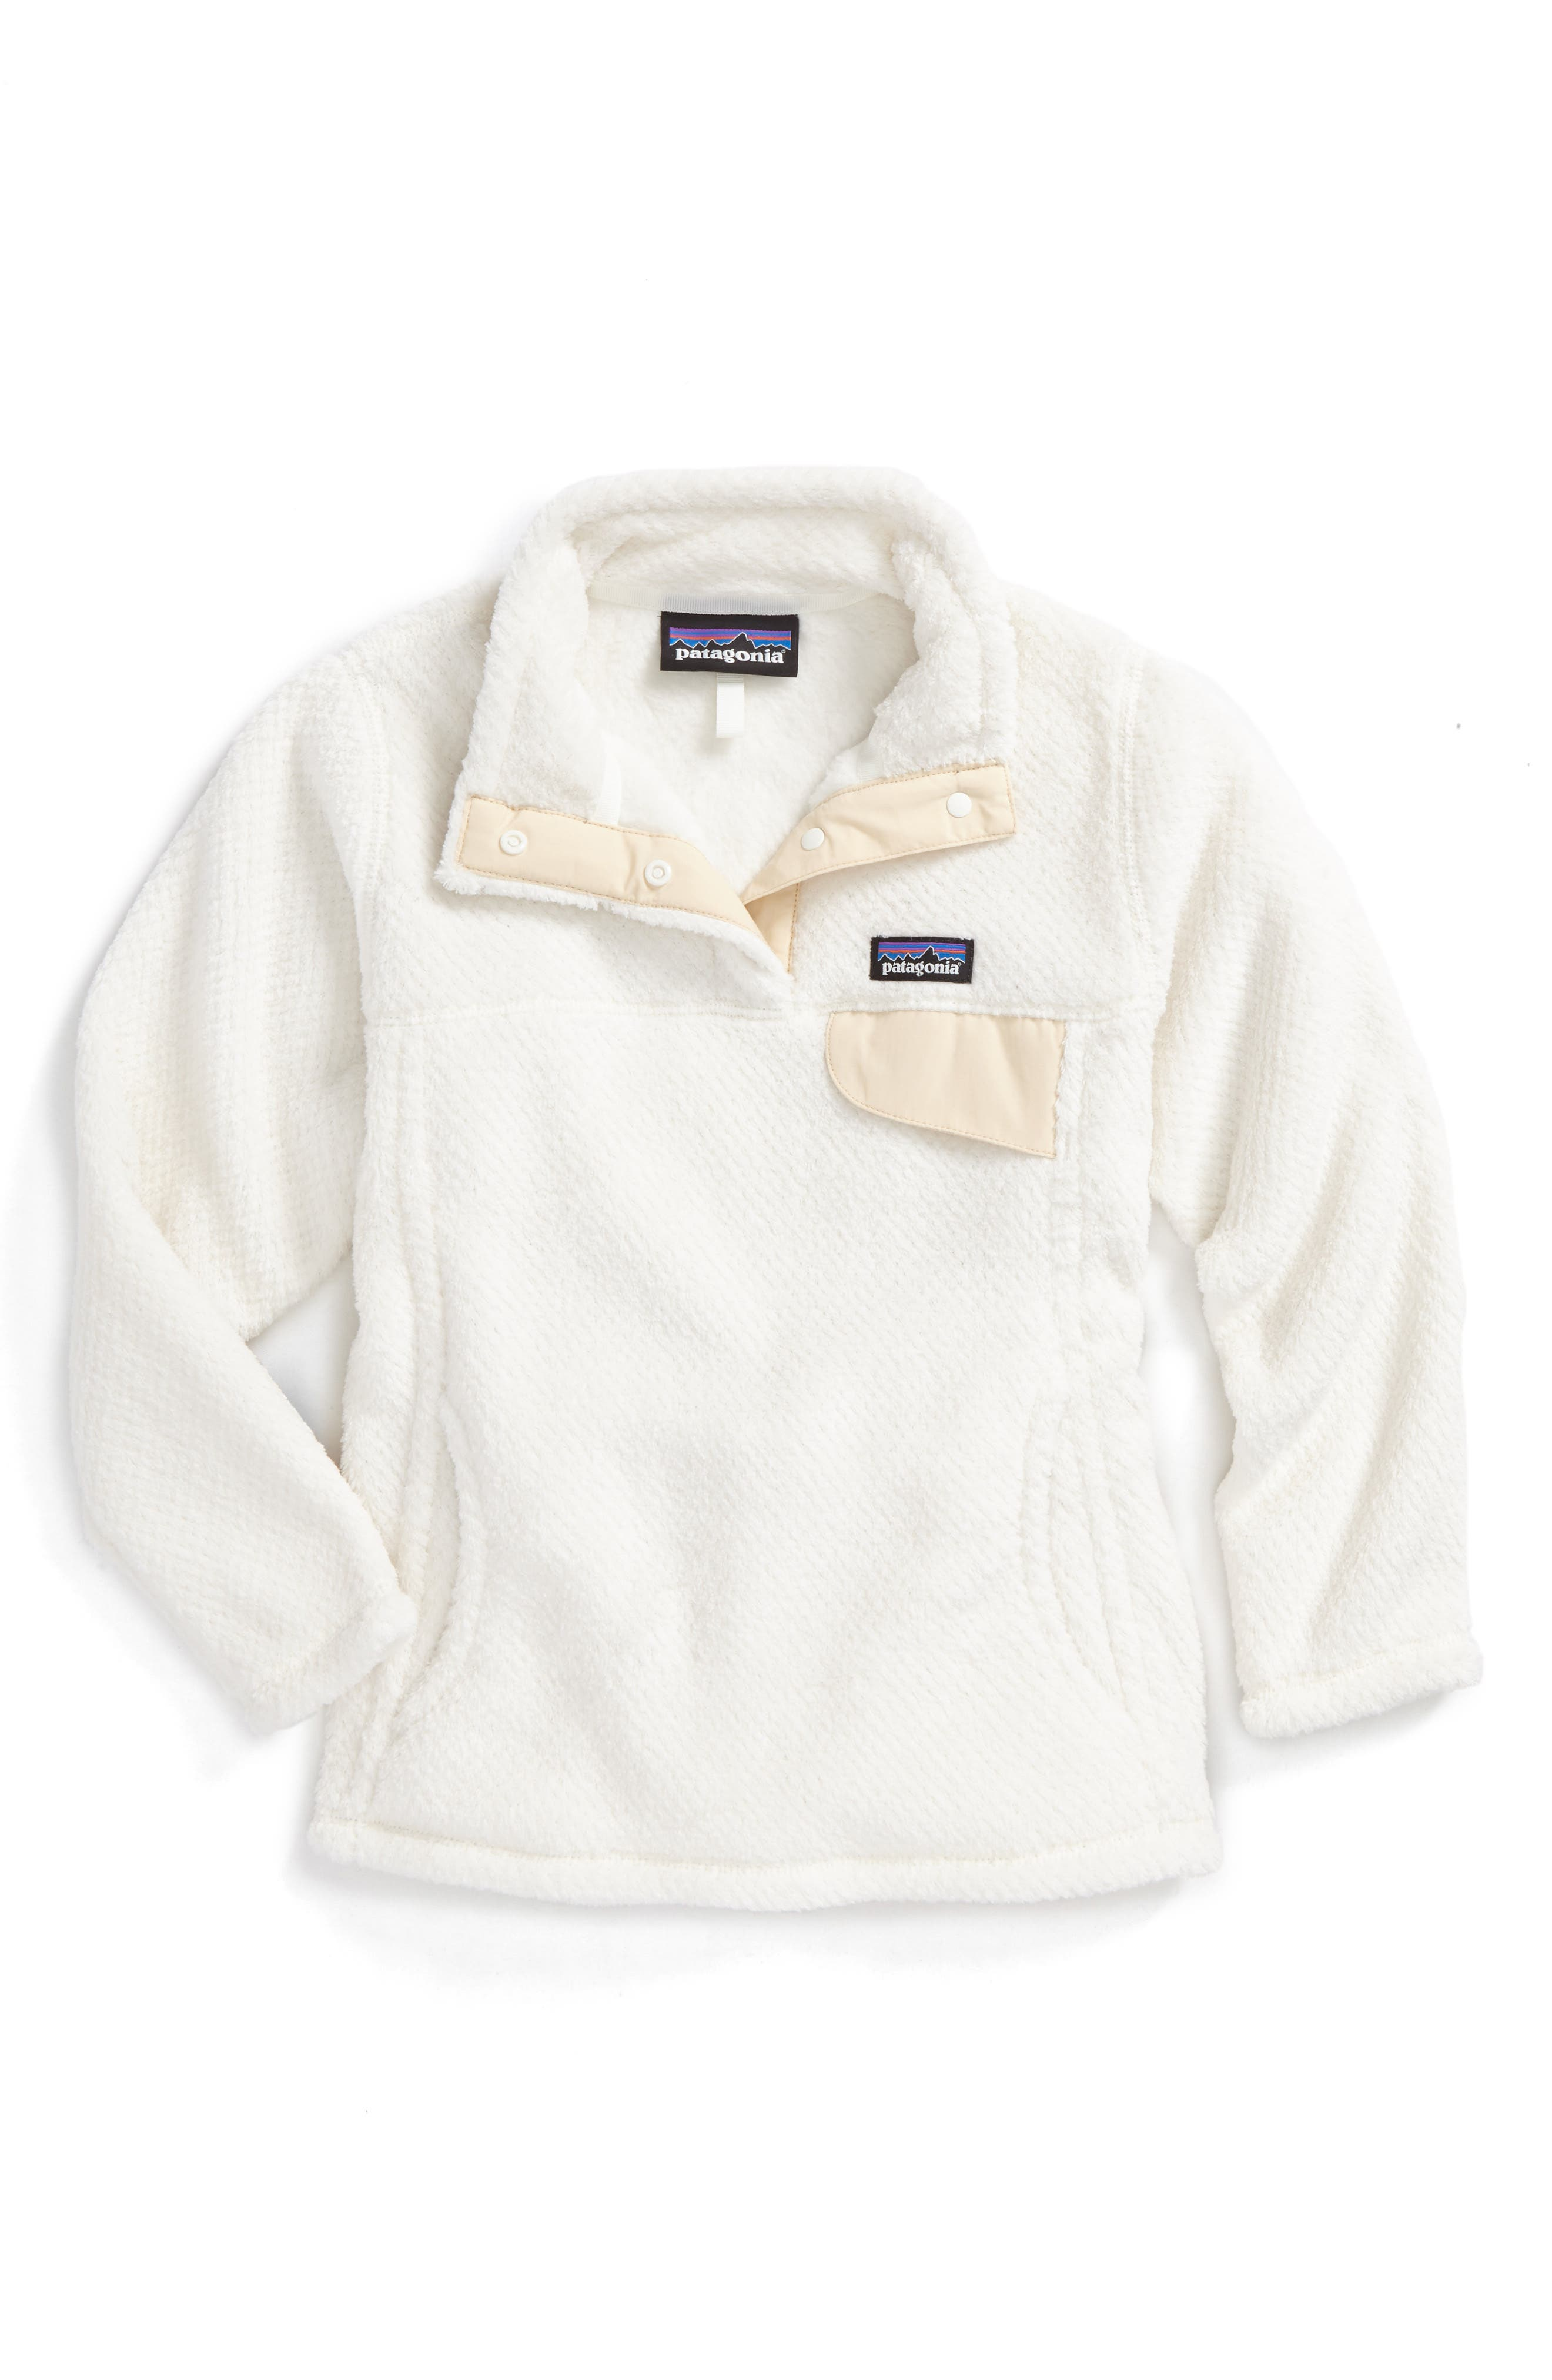 Re-Tool Snap-T<sup>®</sup> Pullover,                             Main thumbnail 1, color,                             Raw Linen - White X-Dye